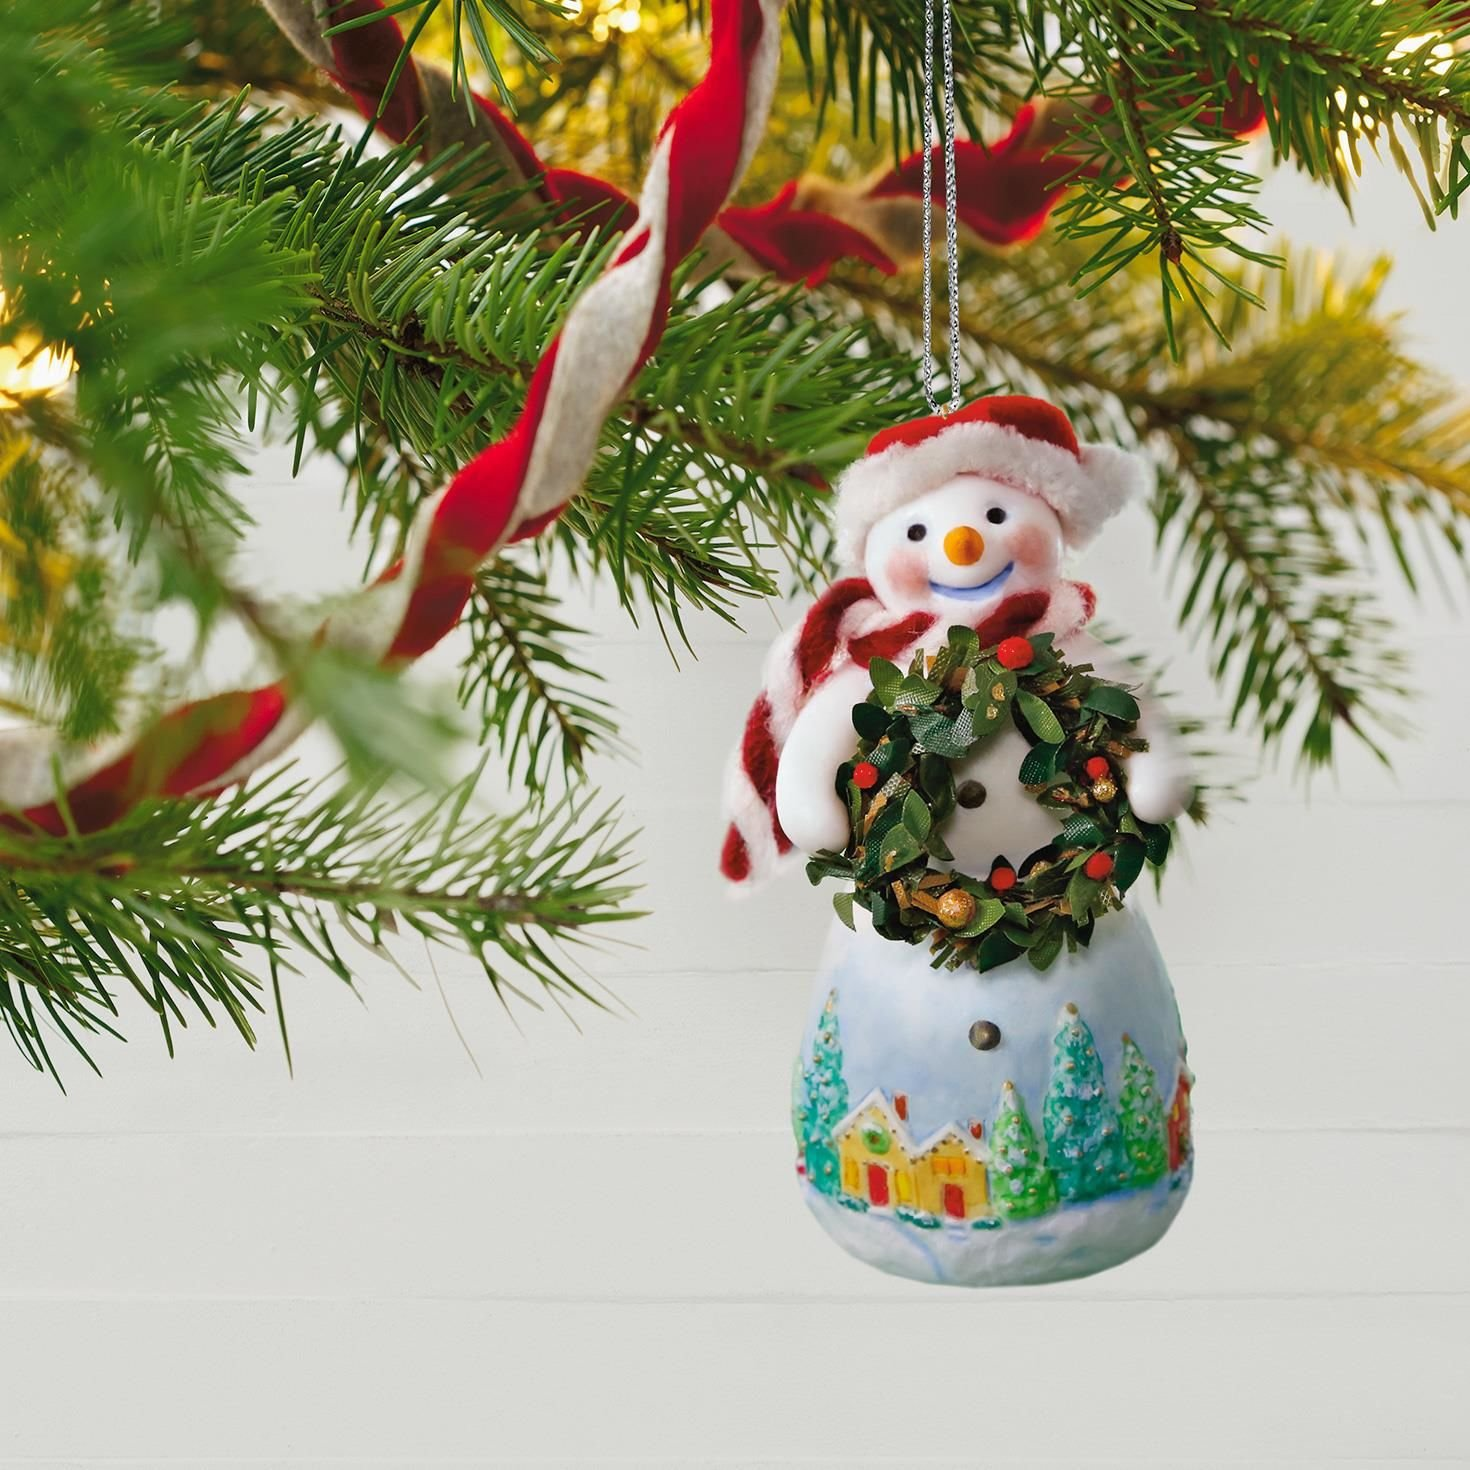 buy hallmark snowman ornaments online snowtop lodge benny m merrymaker with wreath christmas ornament - Buy Cheap Christmas Decorations Online